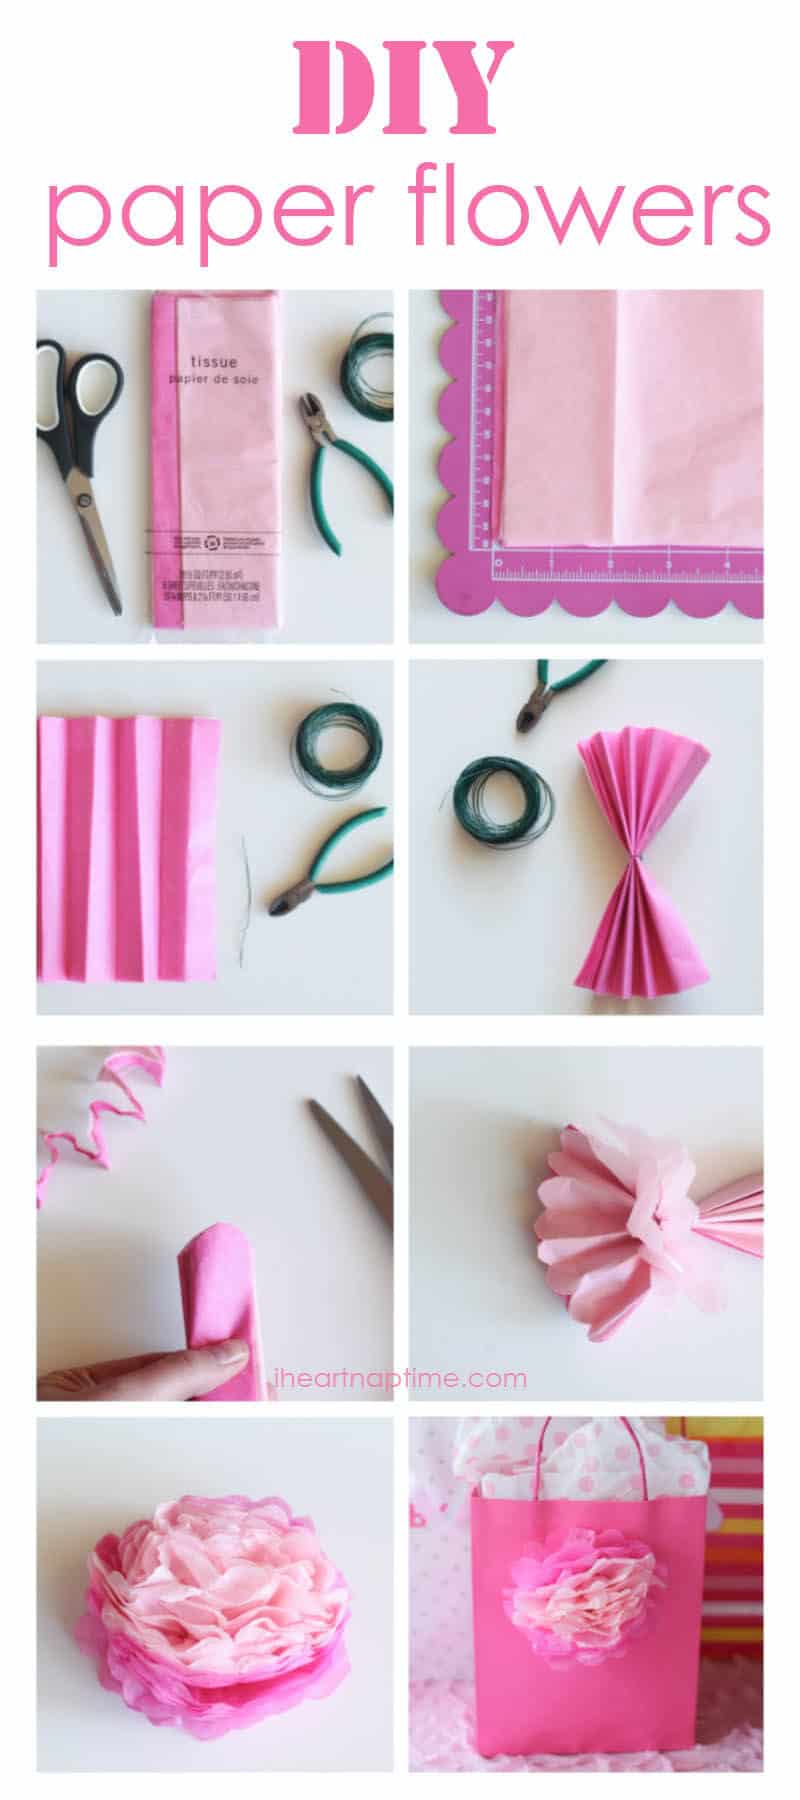 how to make simple tissue paper flowers Paper flower crafts are a beautiful and inexpensive way to welcome  why not  make your home blossom this spring with a few of these  5 tissue paper  flowers | the casual craftlete tissue paper flowers | 25+ paper flower crafts  save 6 simple gift bag with ombre paper flower pattern | nobiggienet.